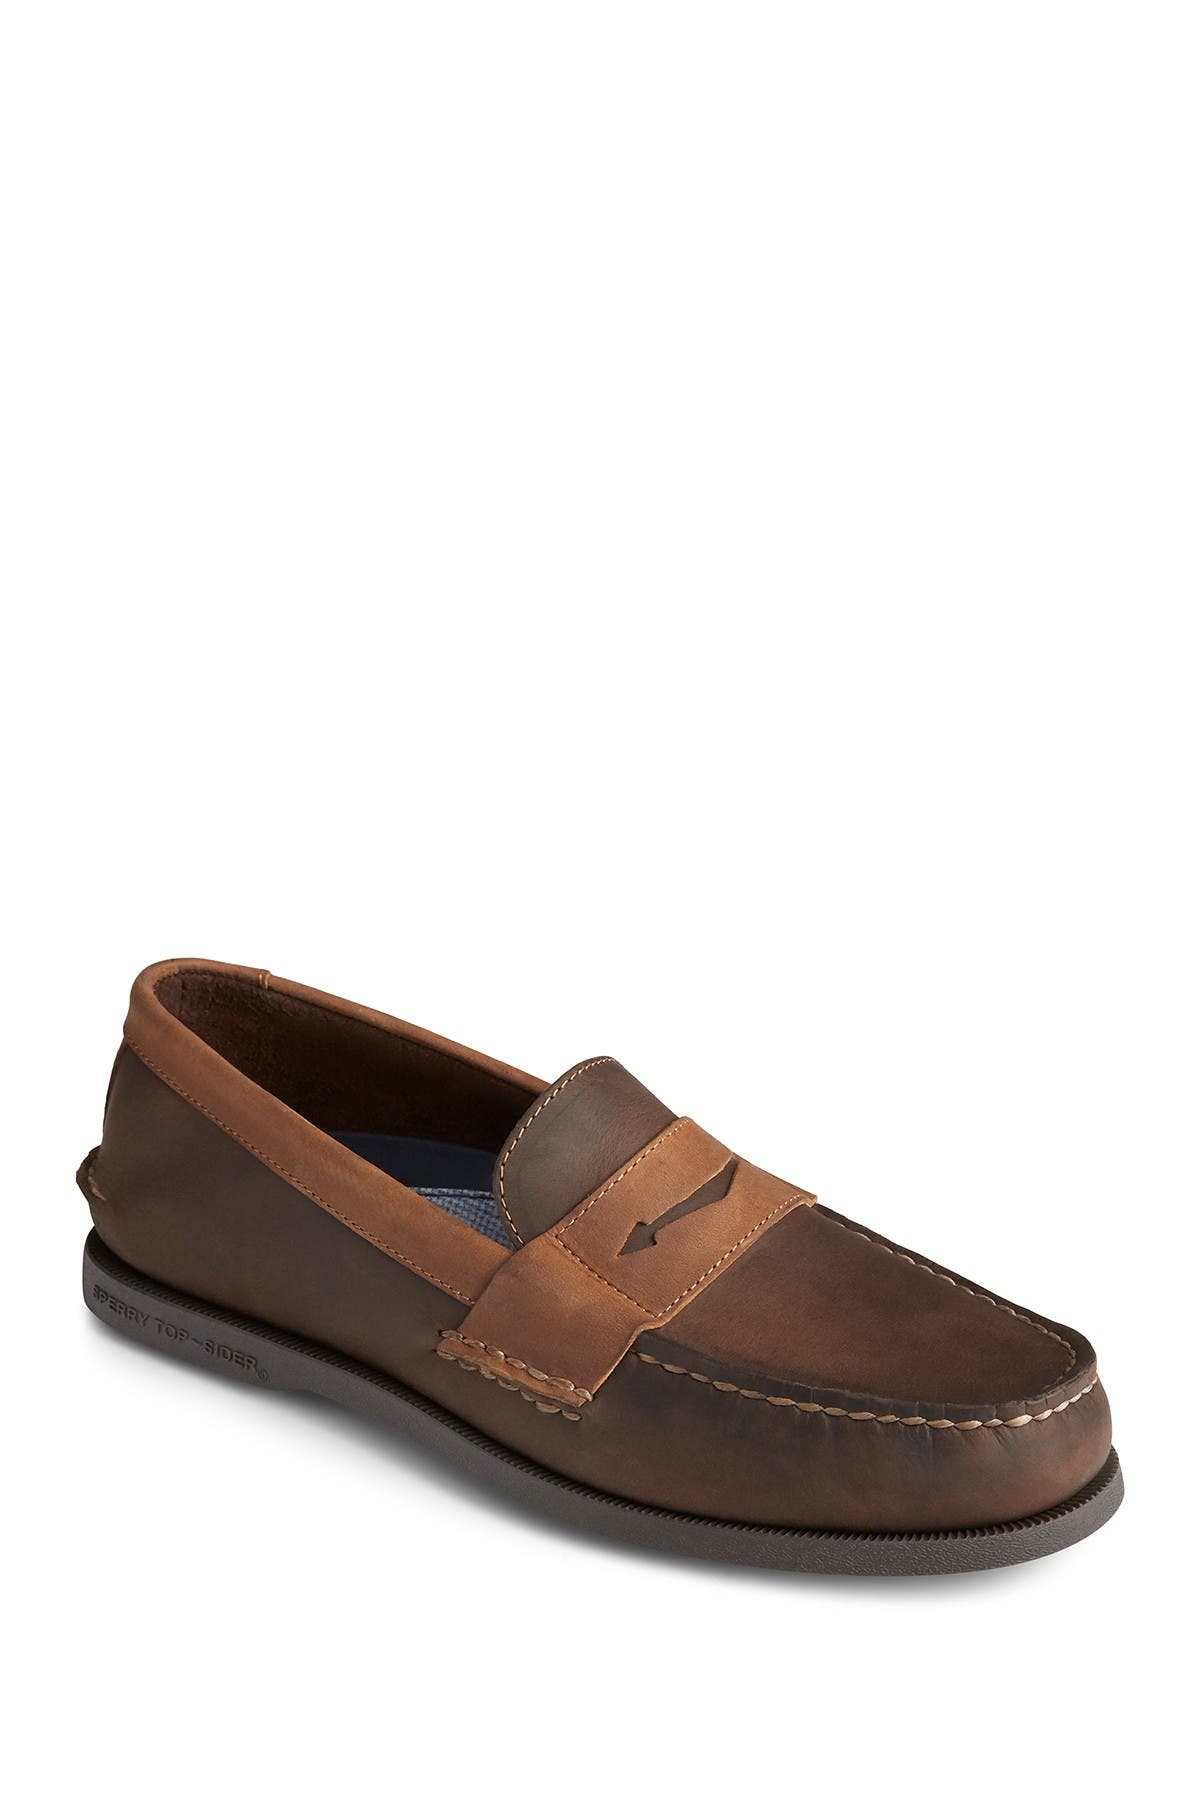 Image of Sperry Wild Horse Penny Loafer - Wide Width Available